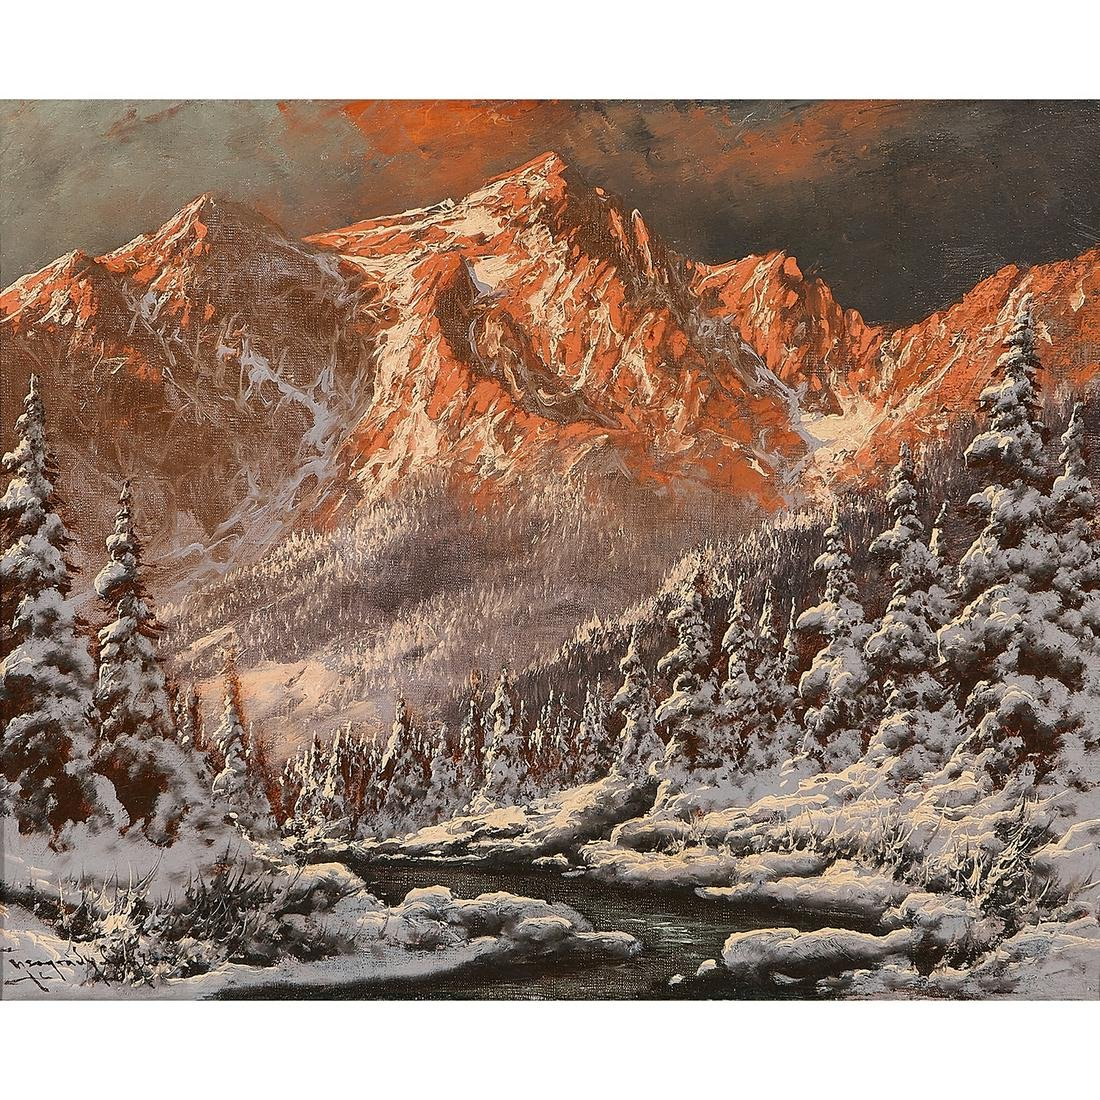 László Neogrady, Alpine Winter, oil on canvas